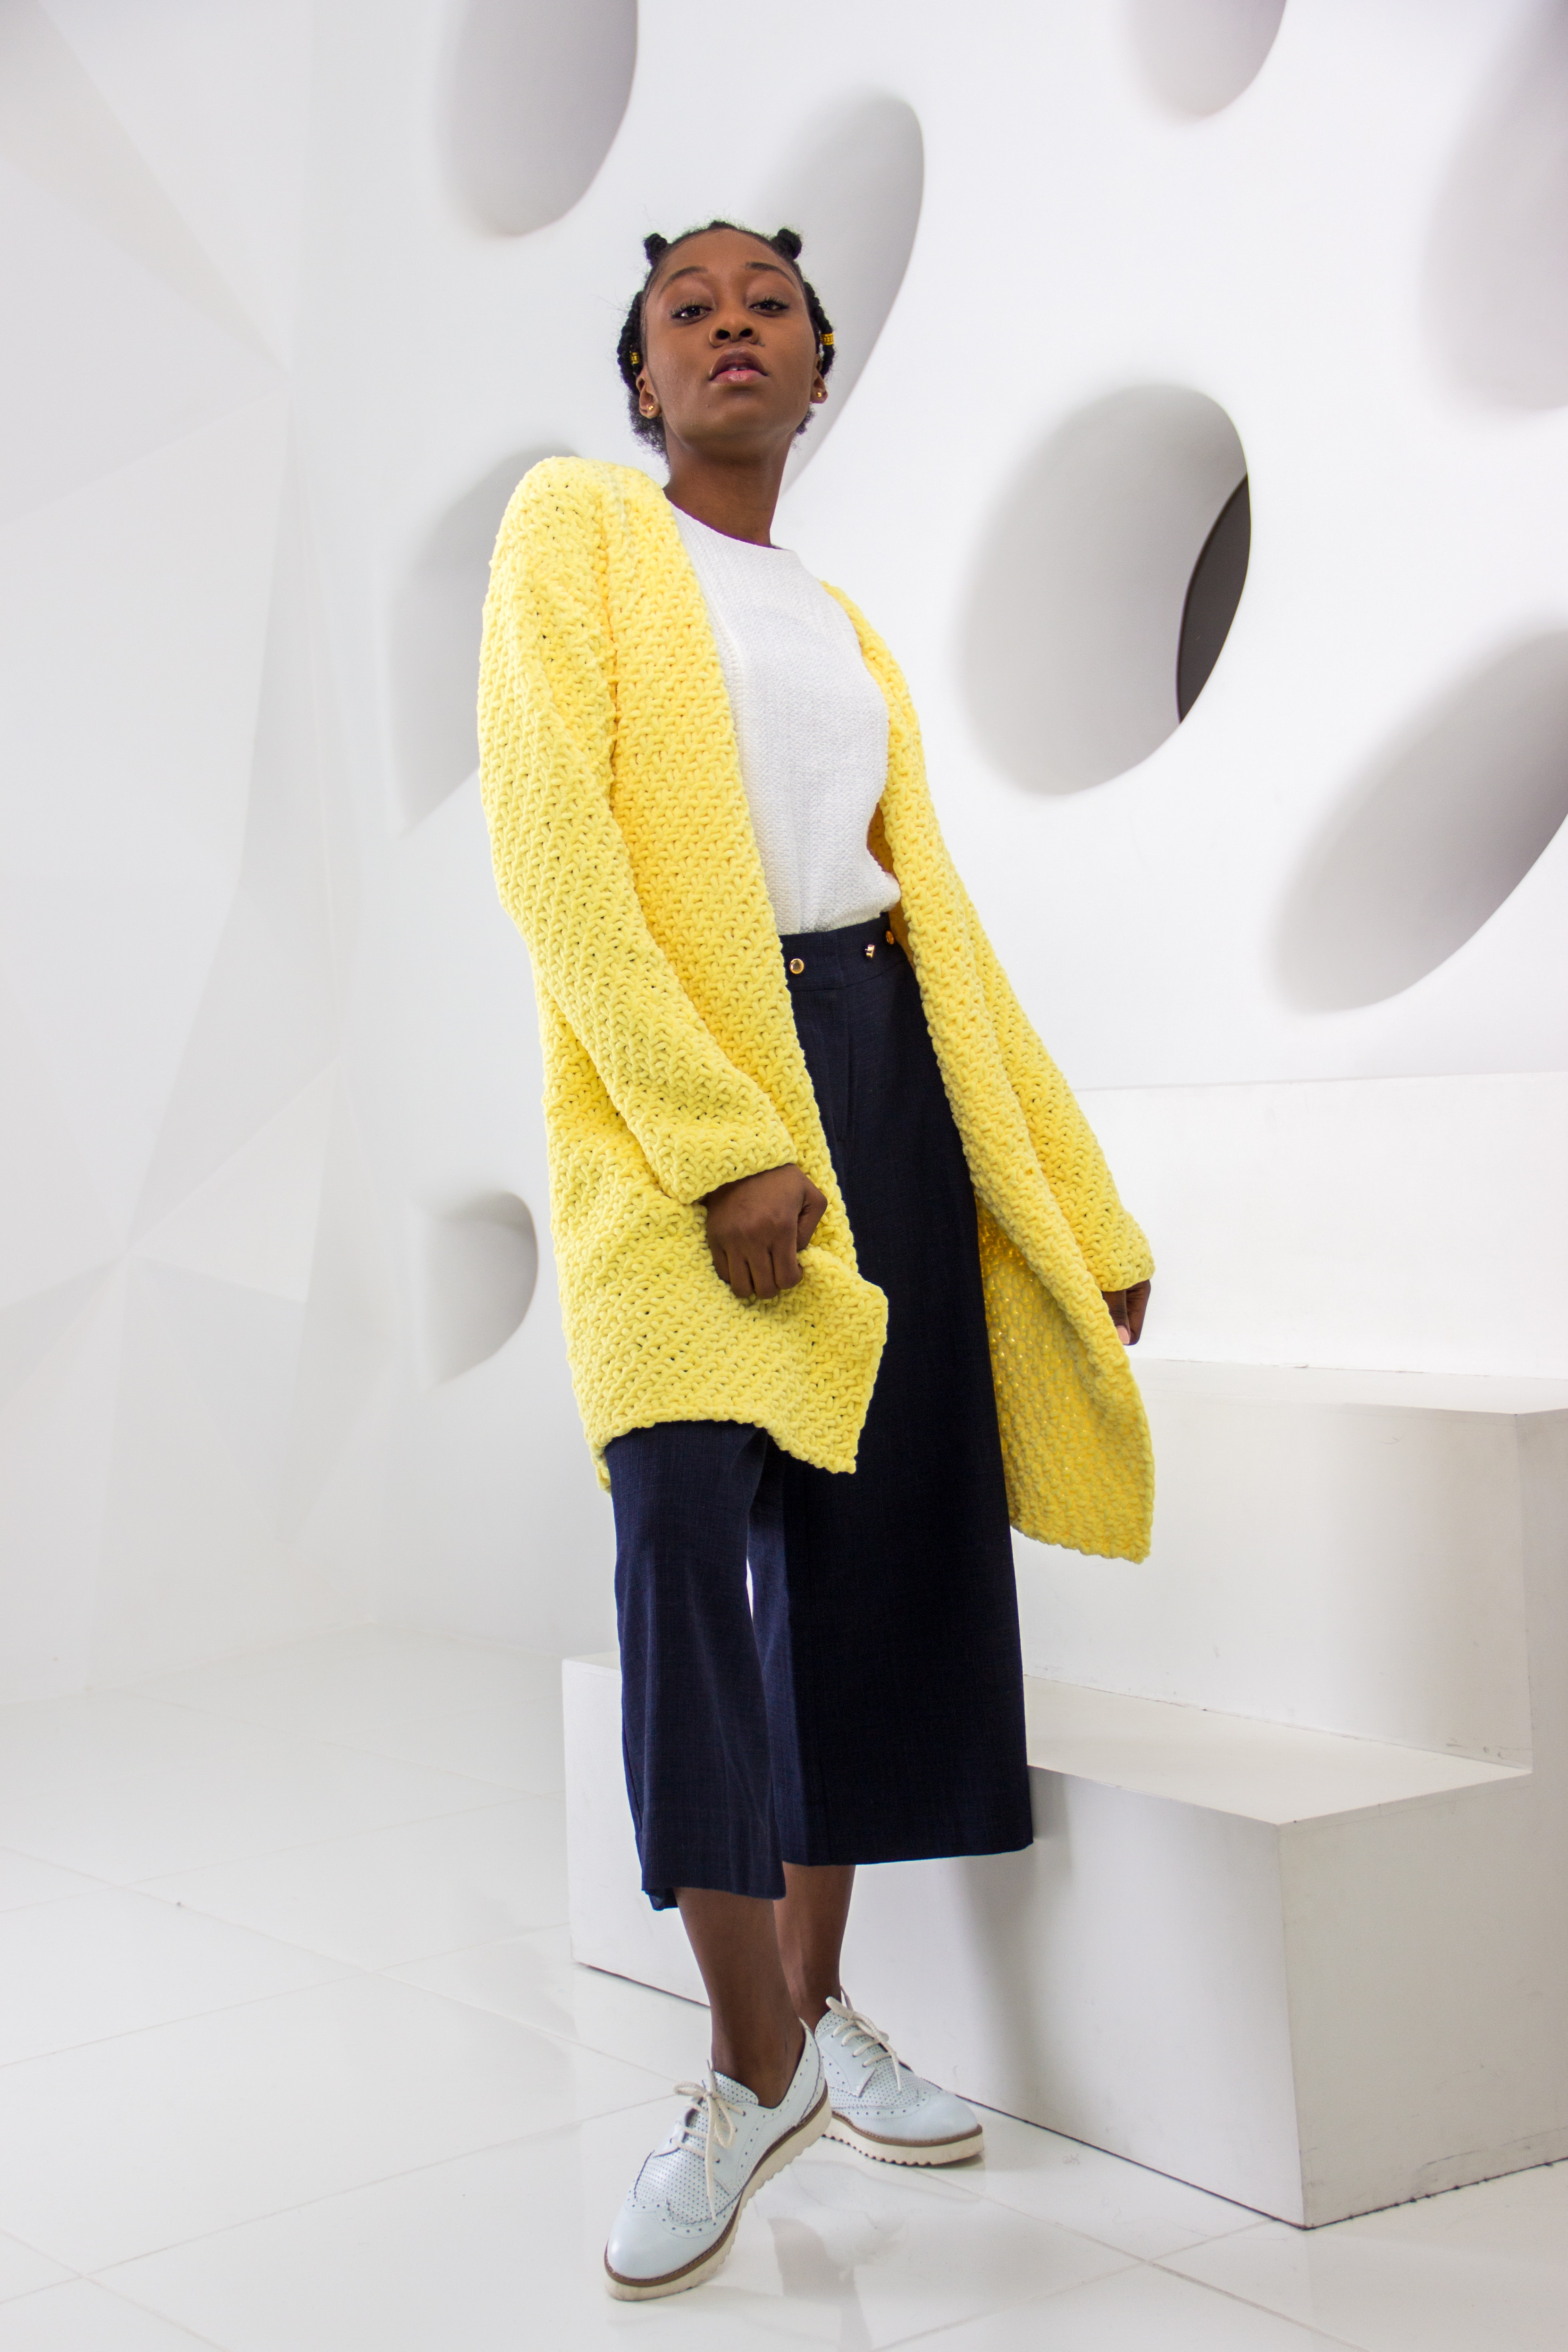 Woman Wearing Yellow Knit Cardigan Standing, Photography, Young, Yellow, Woman, HQ Photo